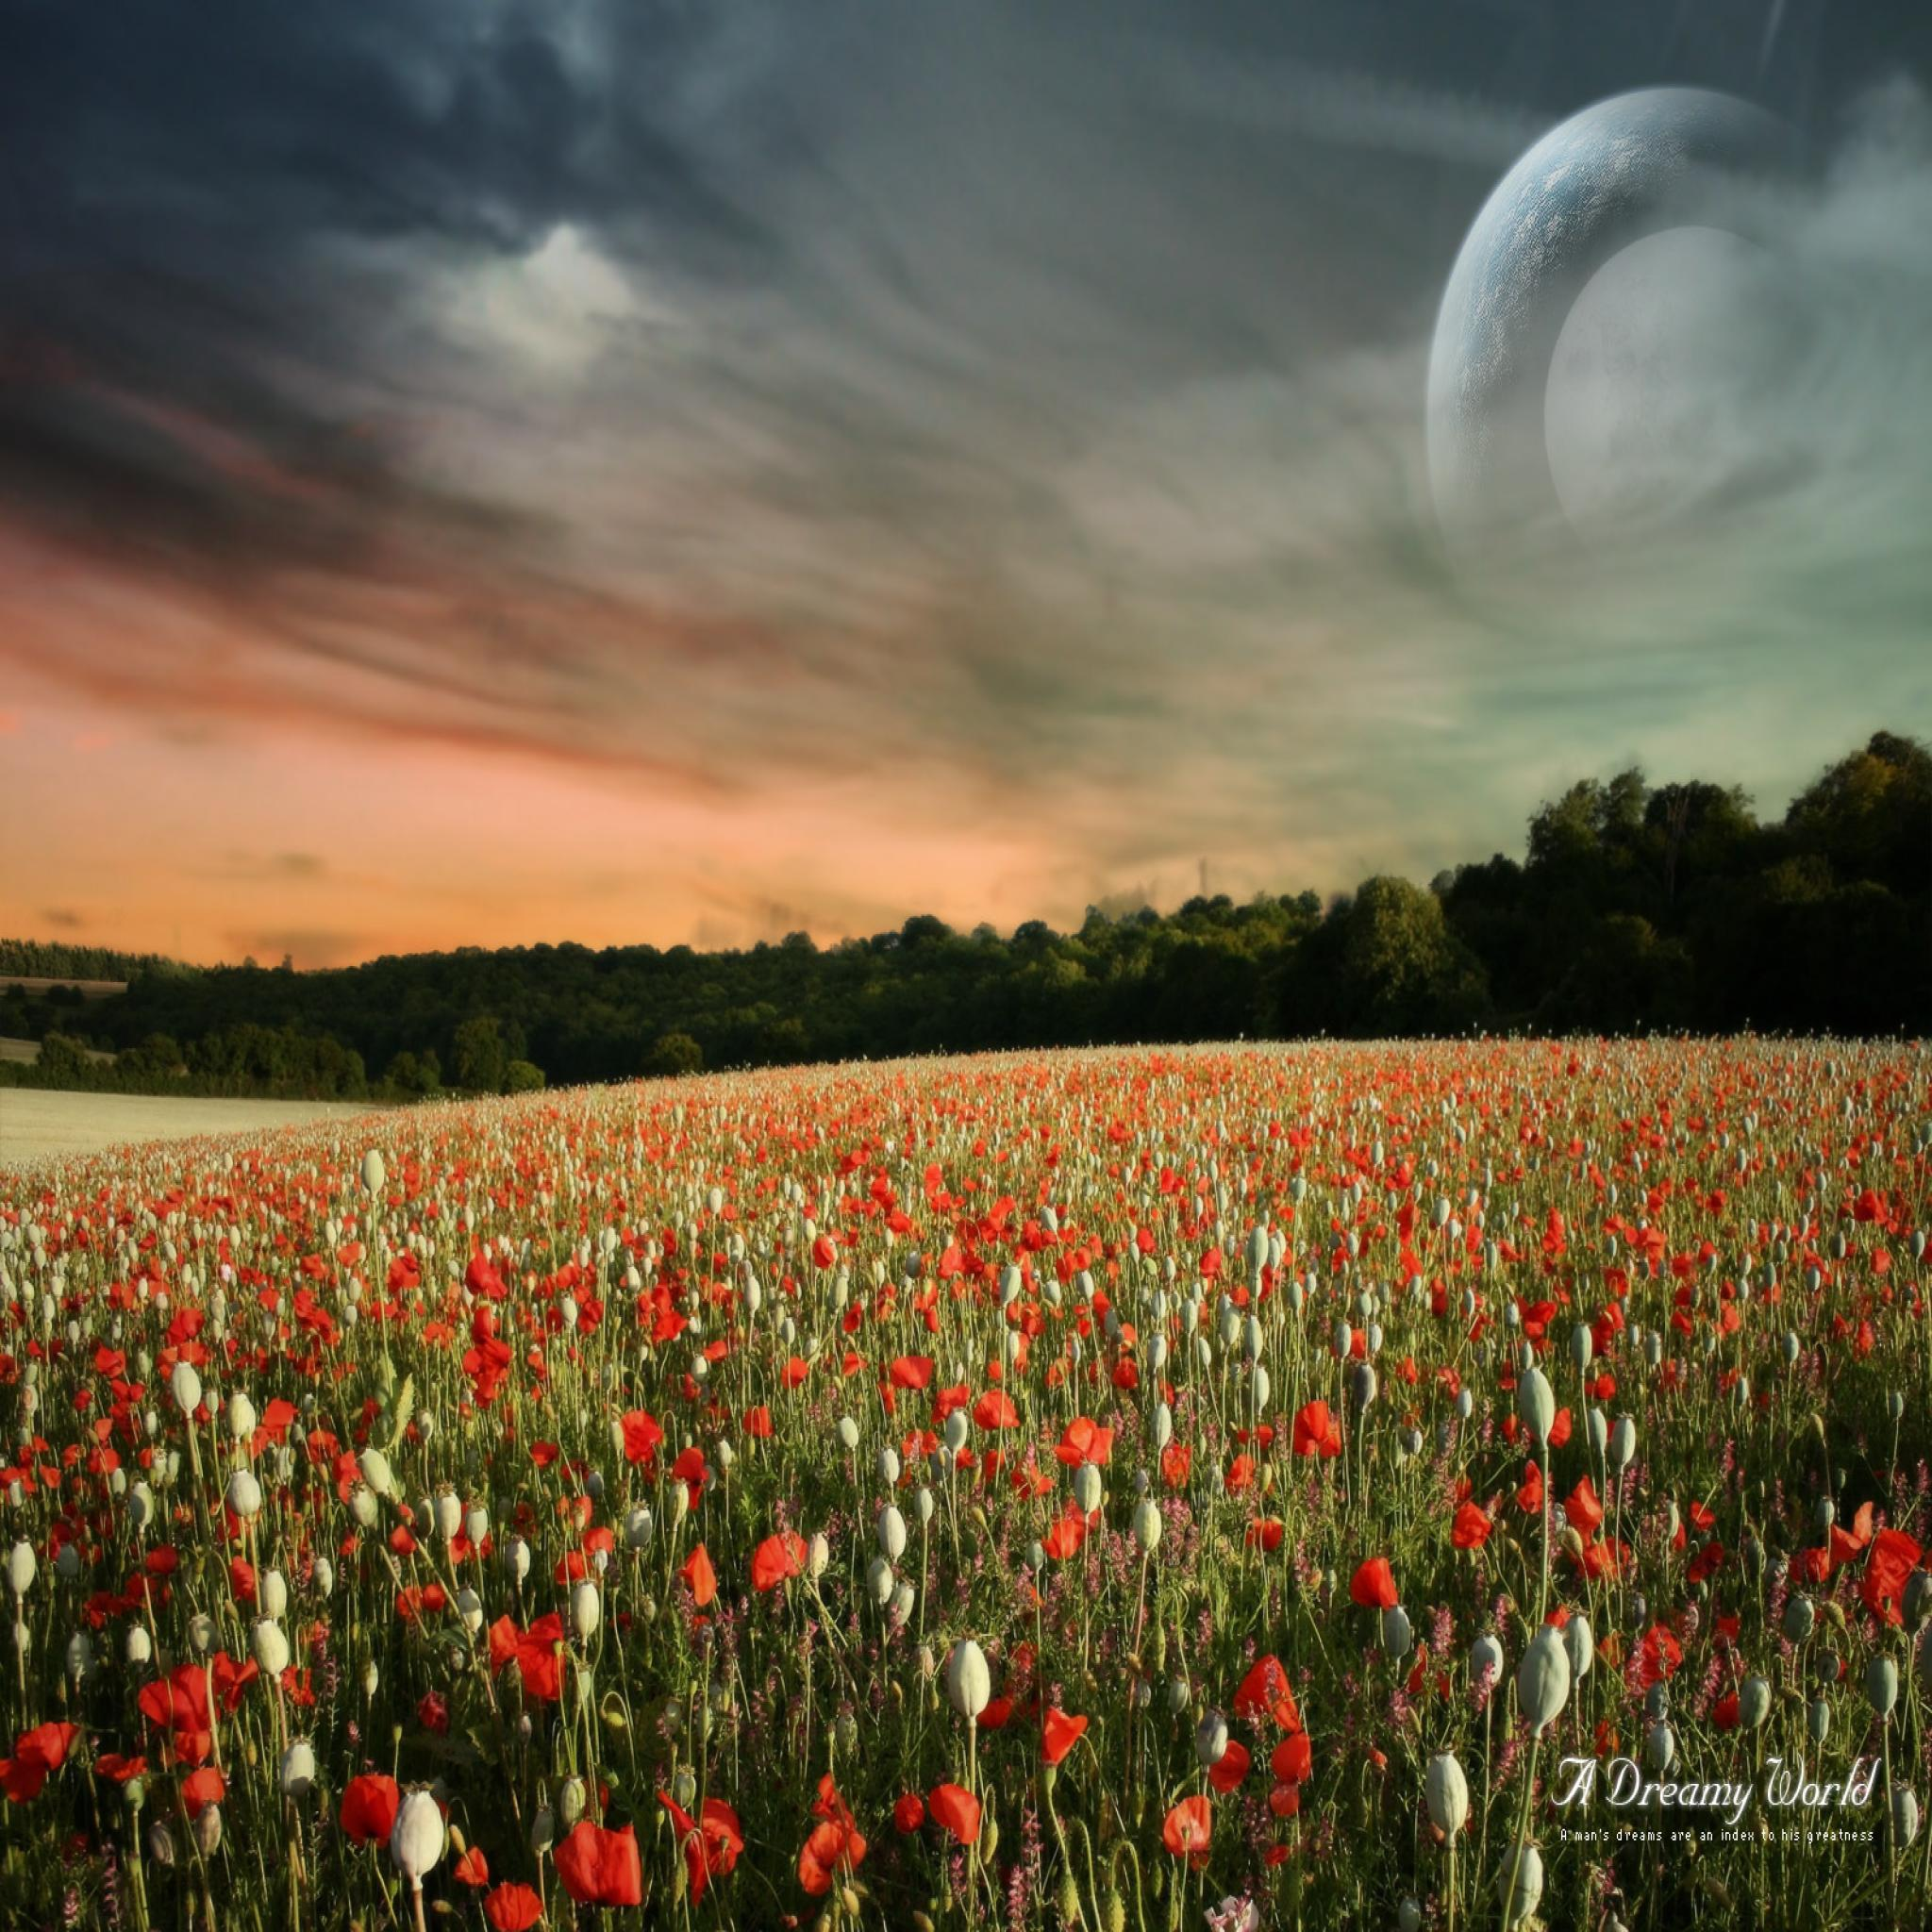 HD Wallpapers 2048x2048 Dreamy Fantasy Wallpapers 2048x2048 Download 2048x2048